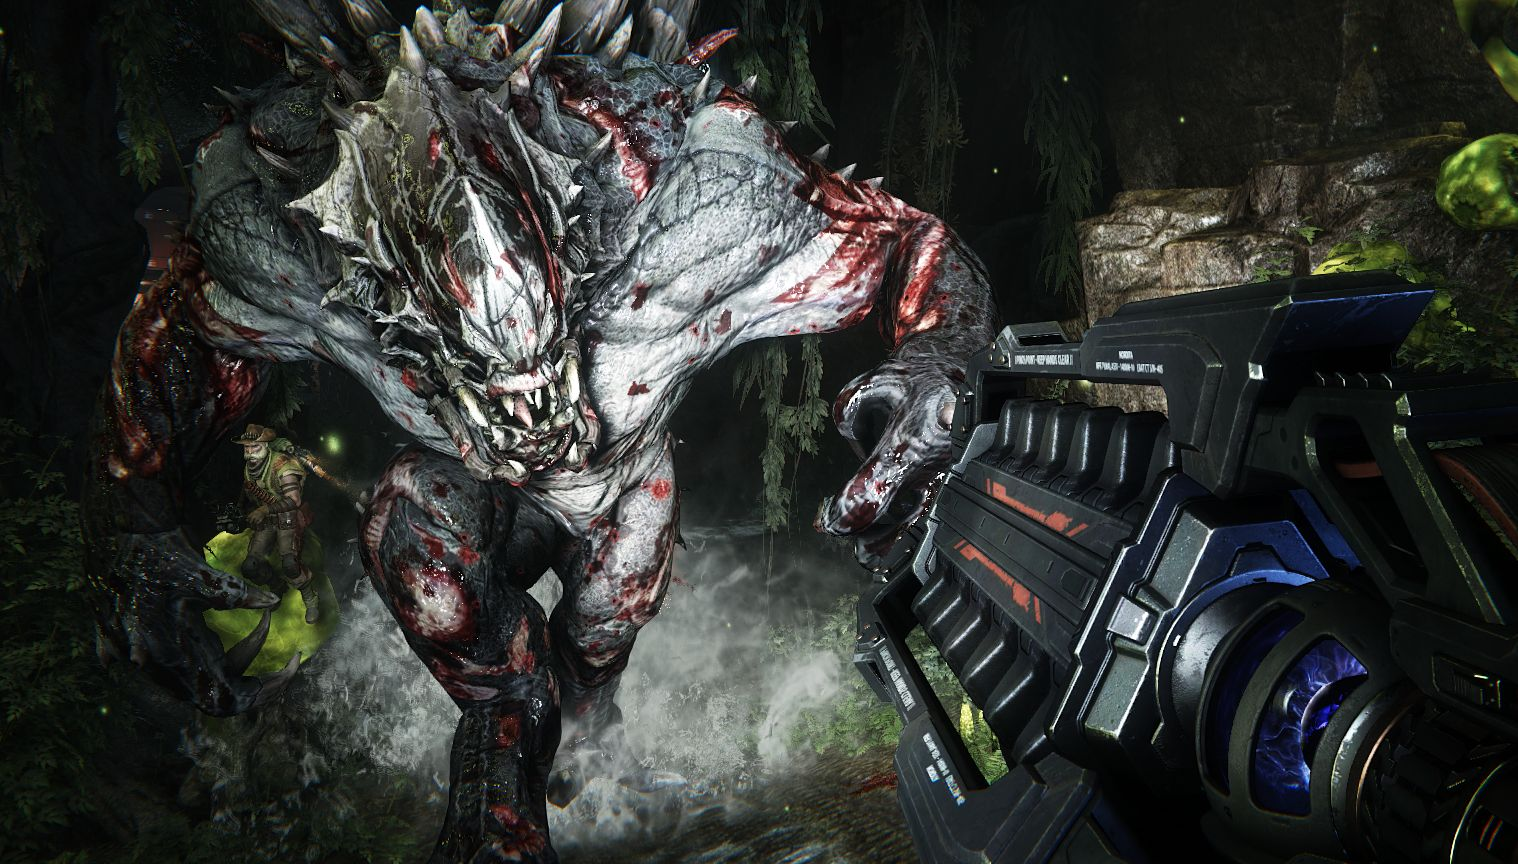 check out the various modes and monsters in evolve just push start